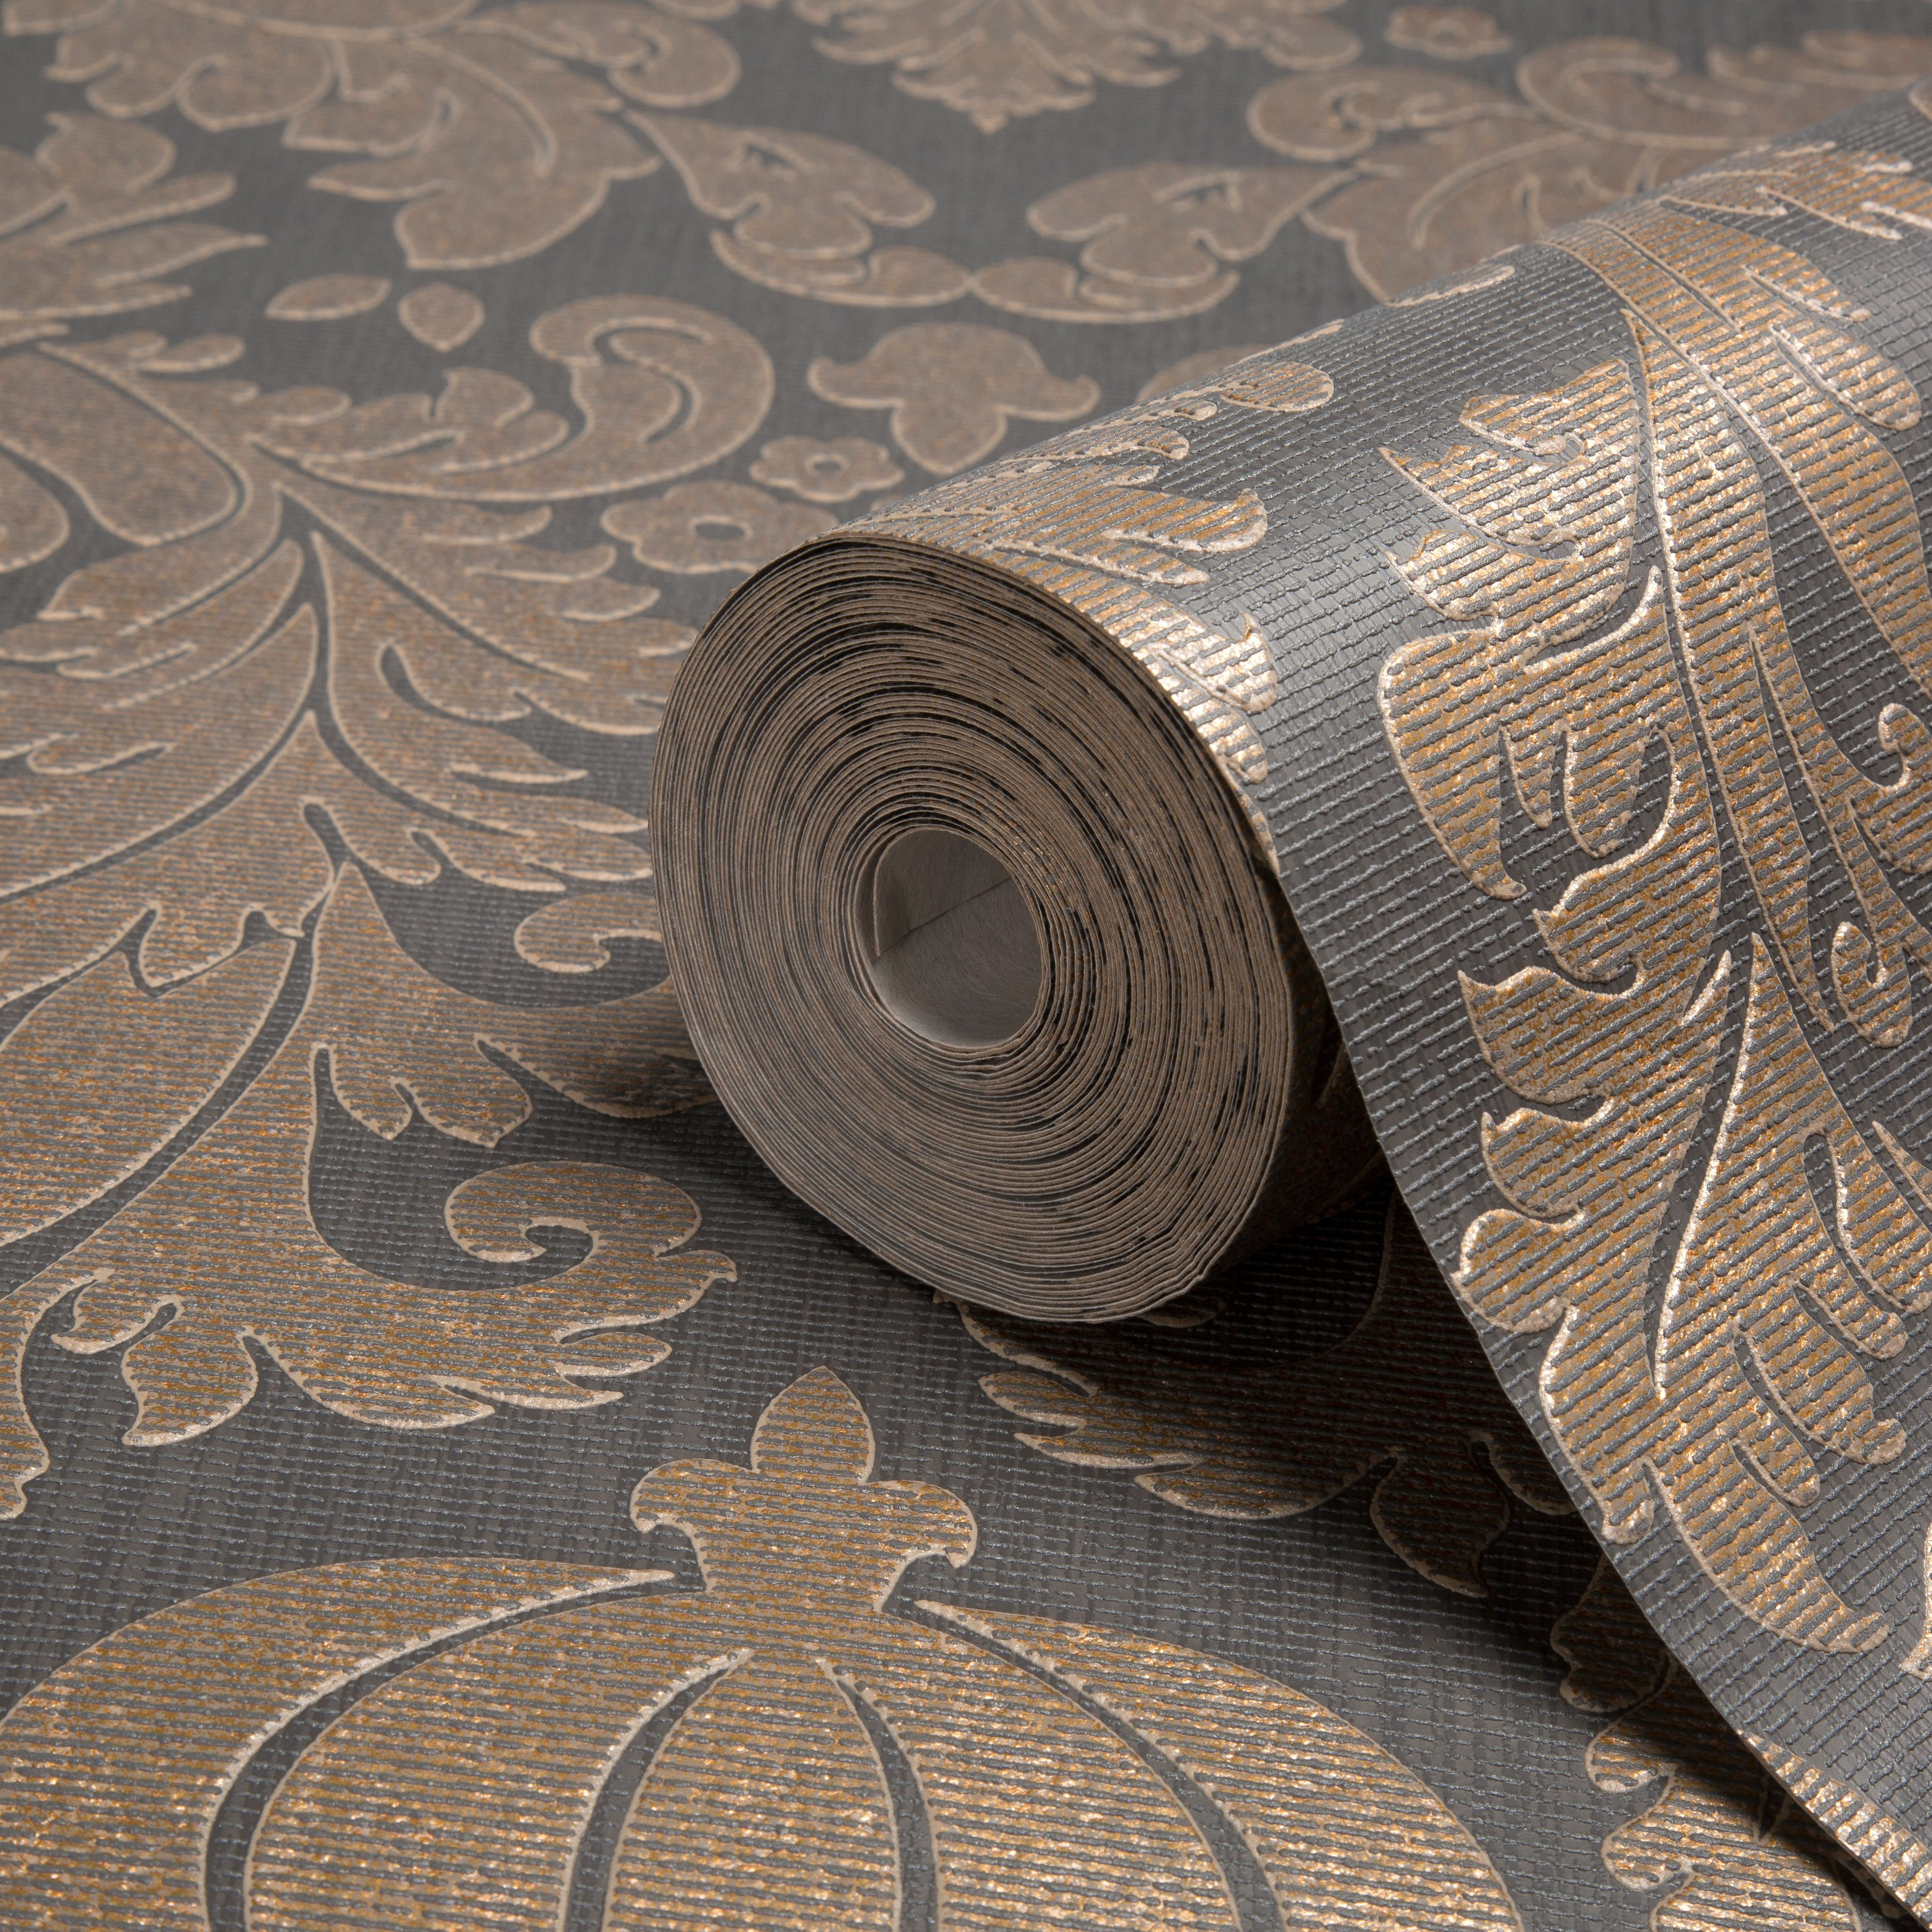 Diy supplies accessories diy at b q - Midas Black Copper Damask Wallpaper B Q For All Your Home And Garden Supplies And Advice On All The Latest Diy Trends